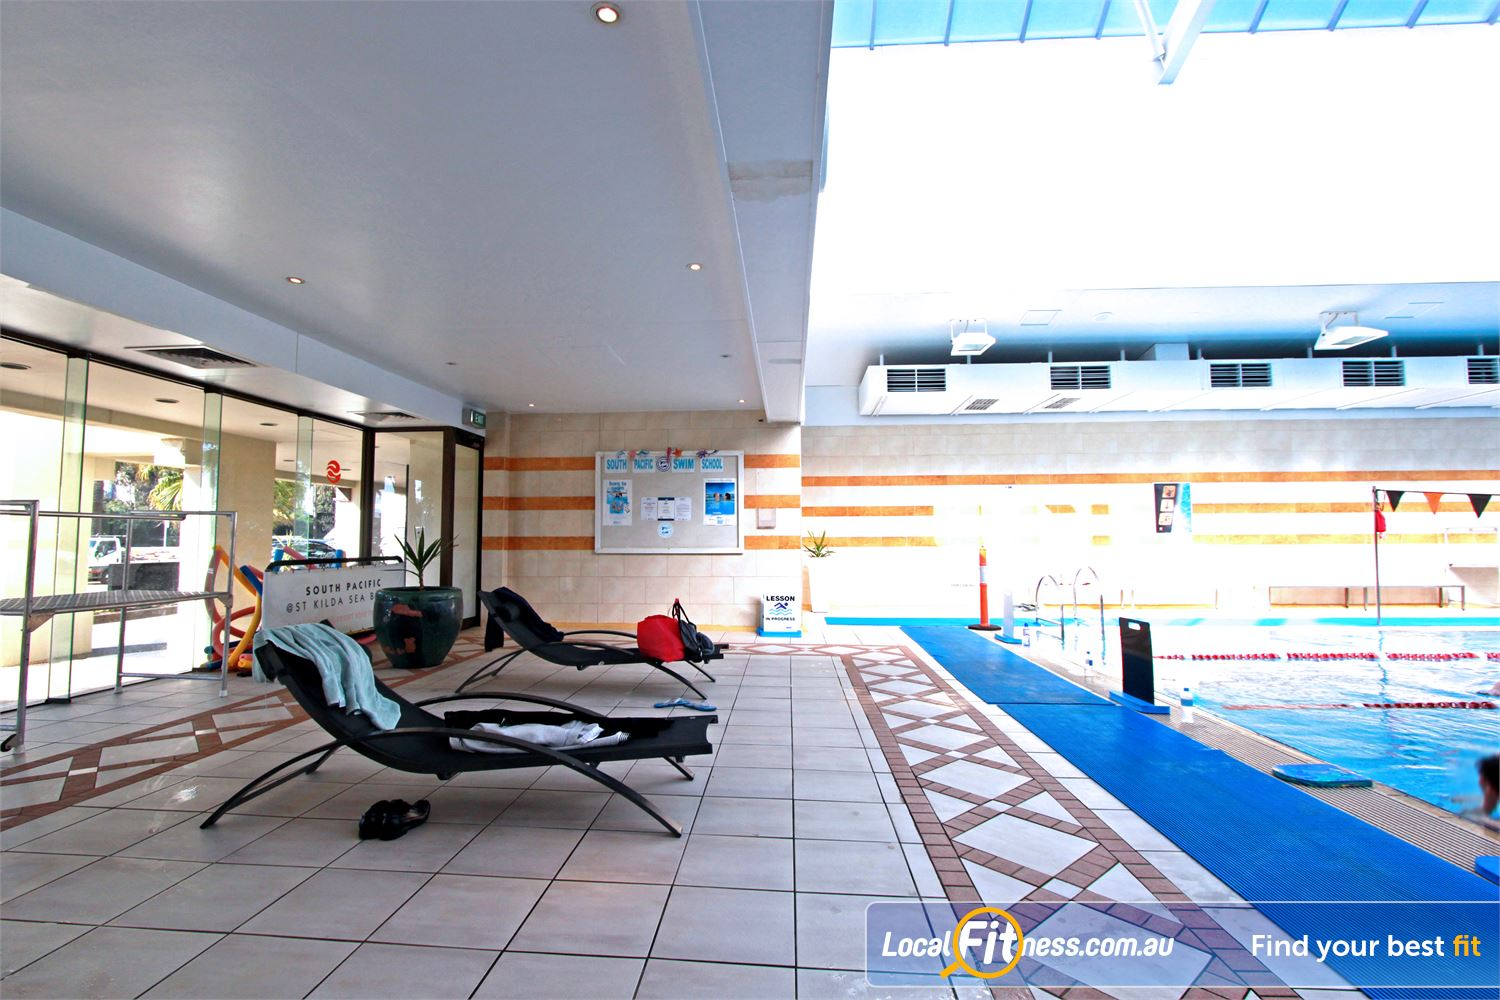 South Pacific Health Clubs Near Balaclava Private members lounge area offering magnificent views of the bay.